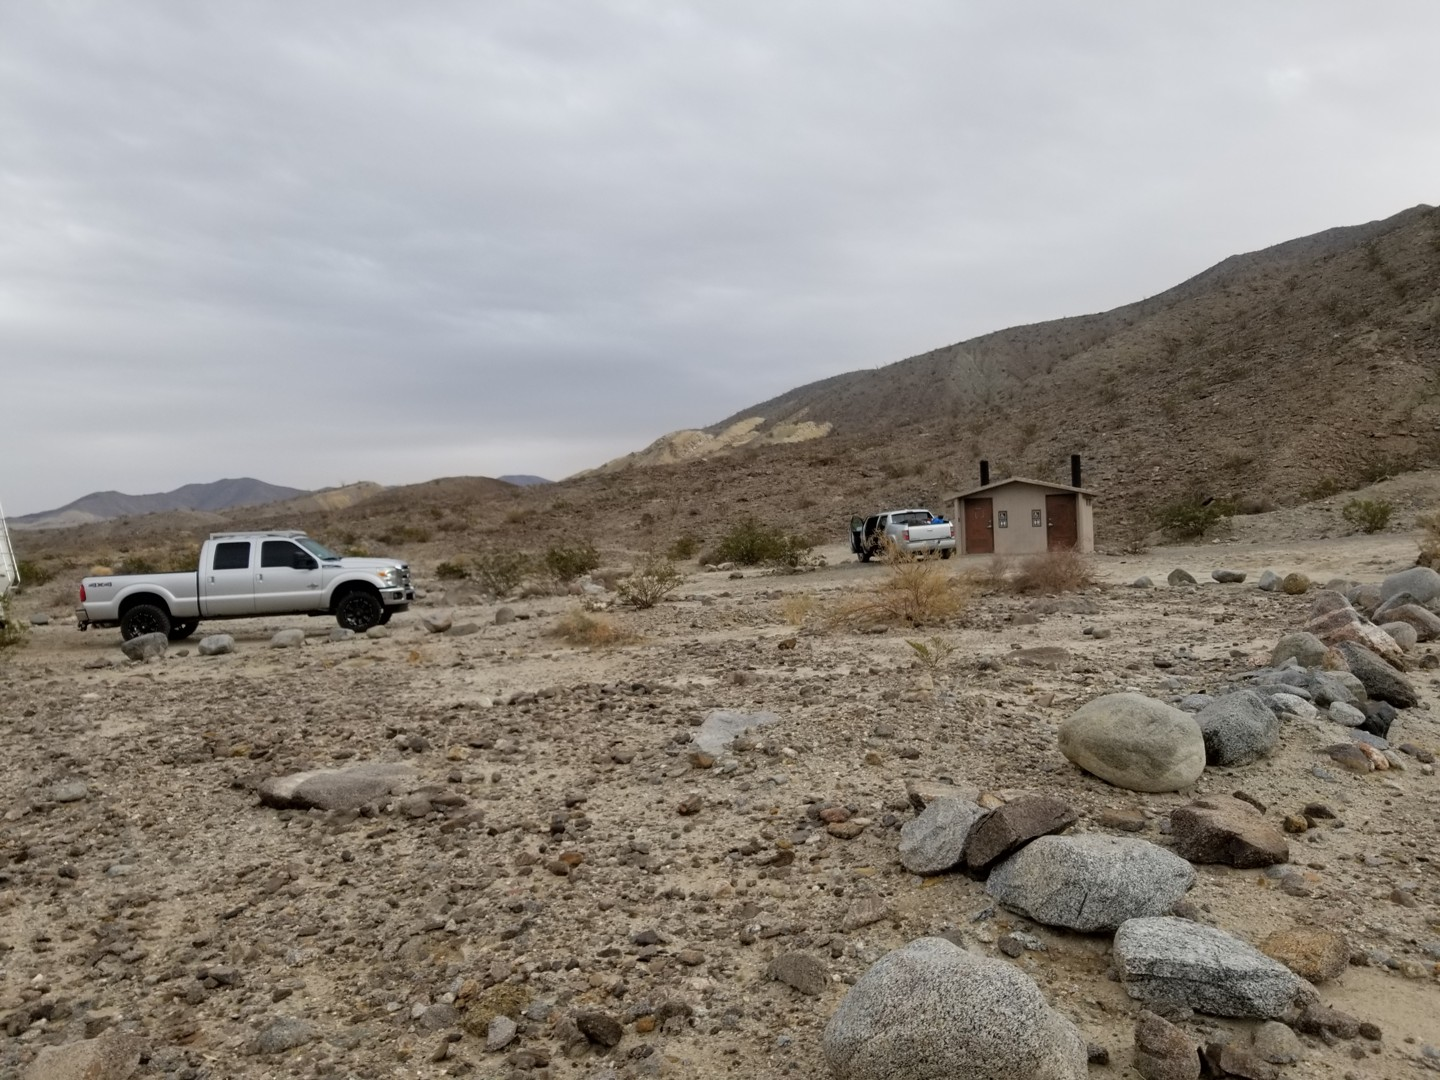 Fish Creek Trail - Anza Borrego - Waypoint 2: Fish Creek Campground